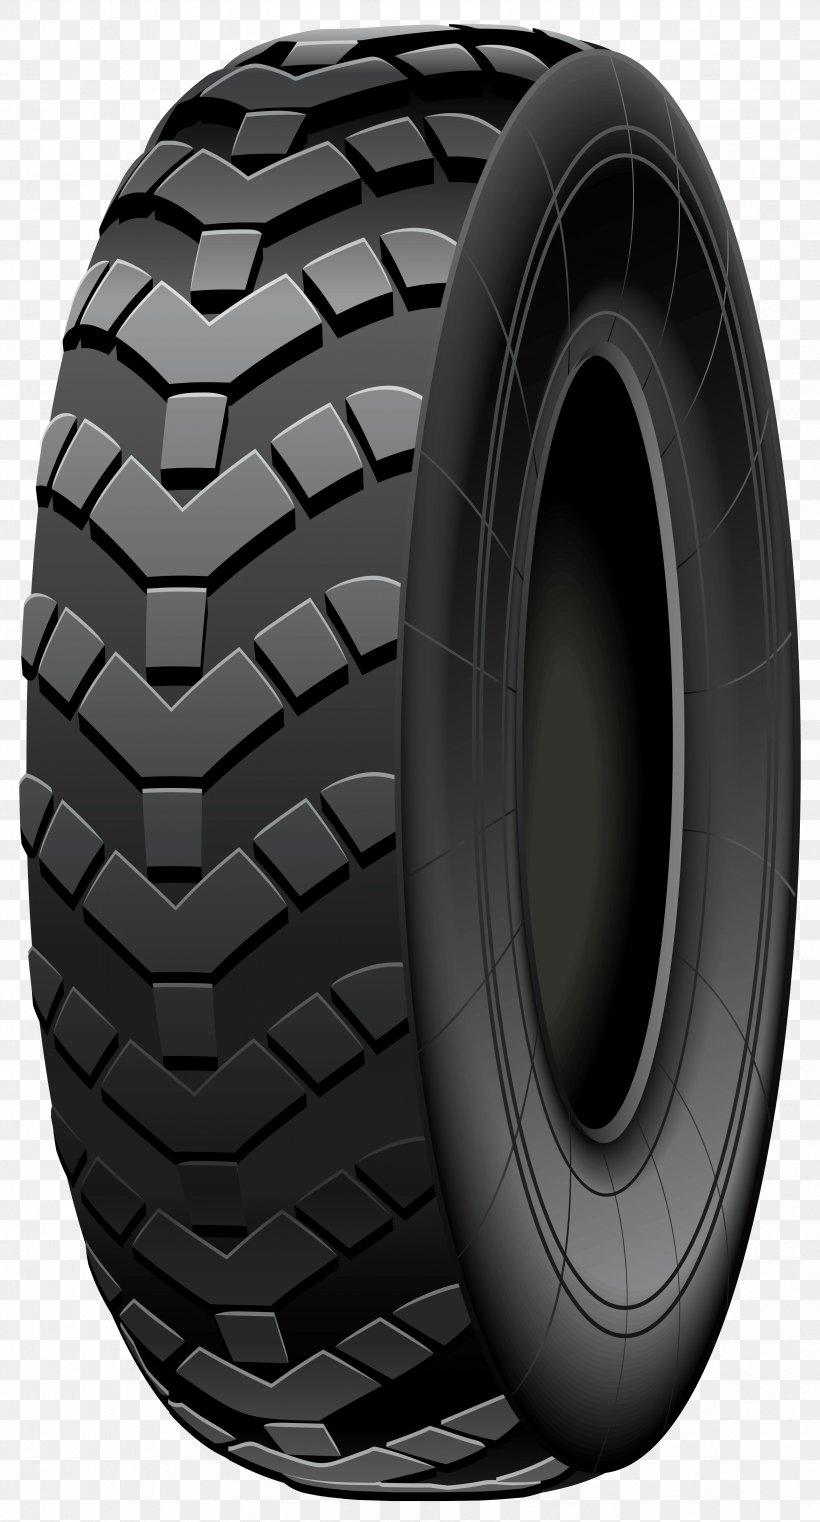 Car Radial Tire Clip Art Tread, PNG, 3401x6316px, Car.